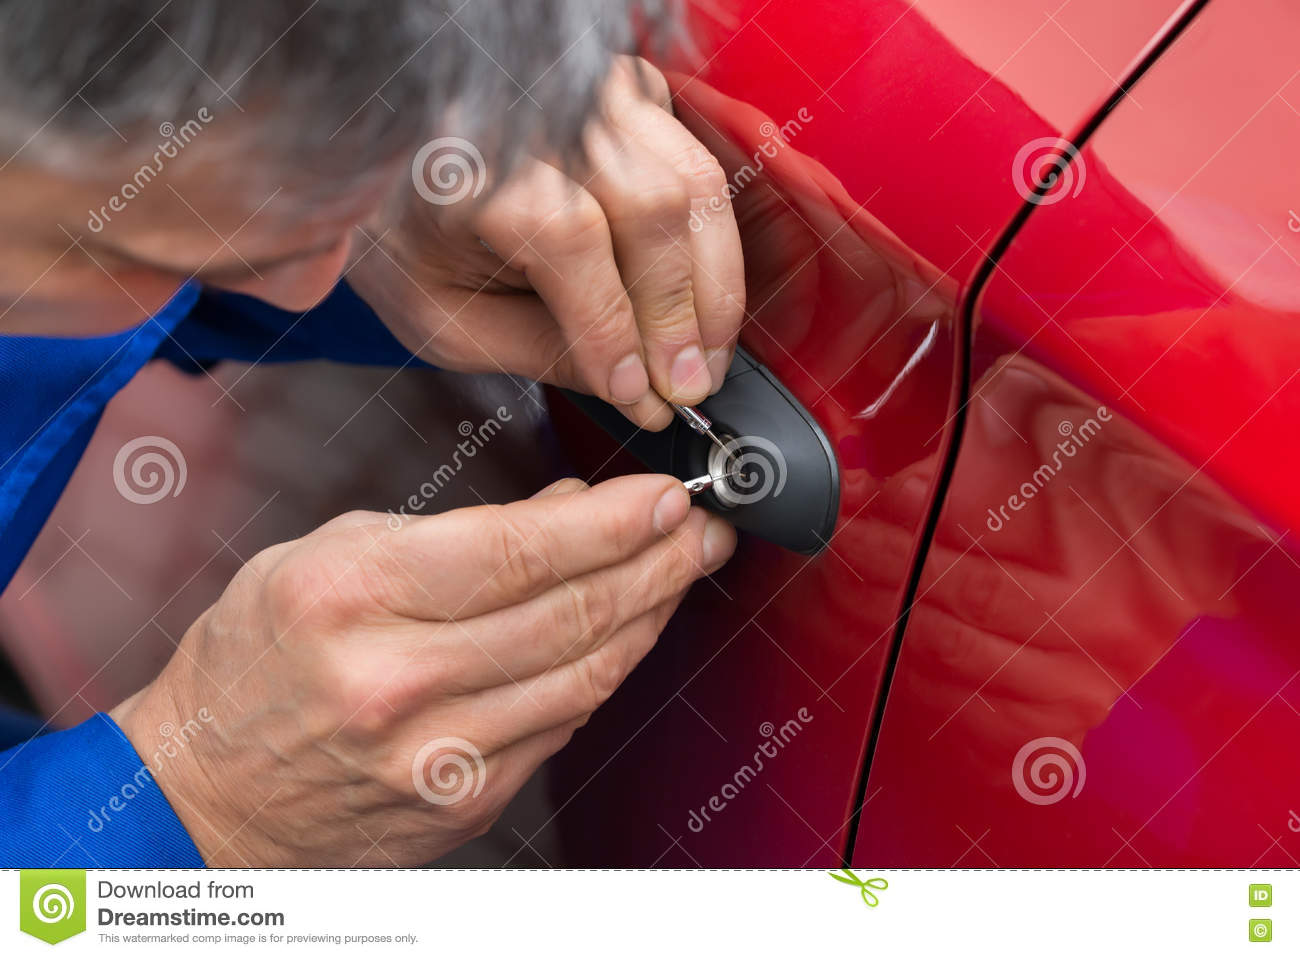 Hand Holding Lockpicker To Open Car Door Stock Photo